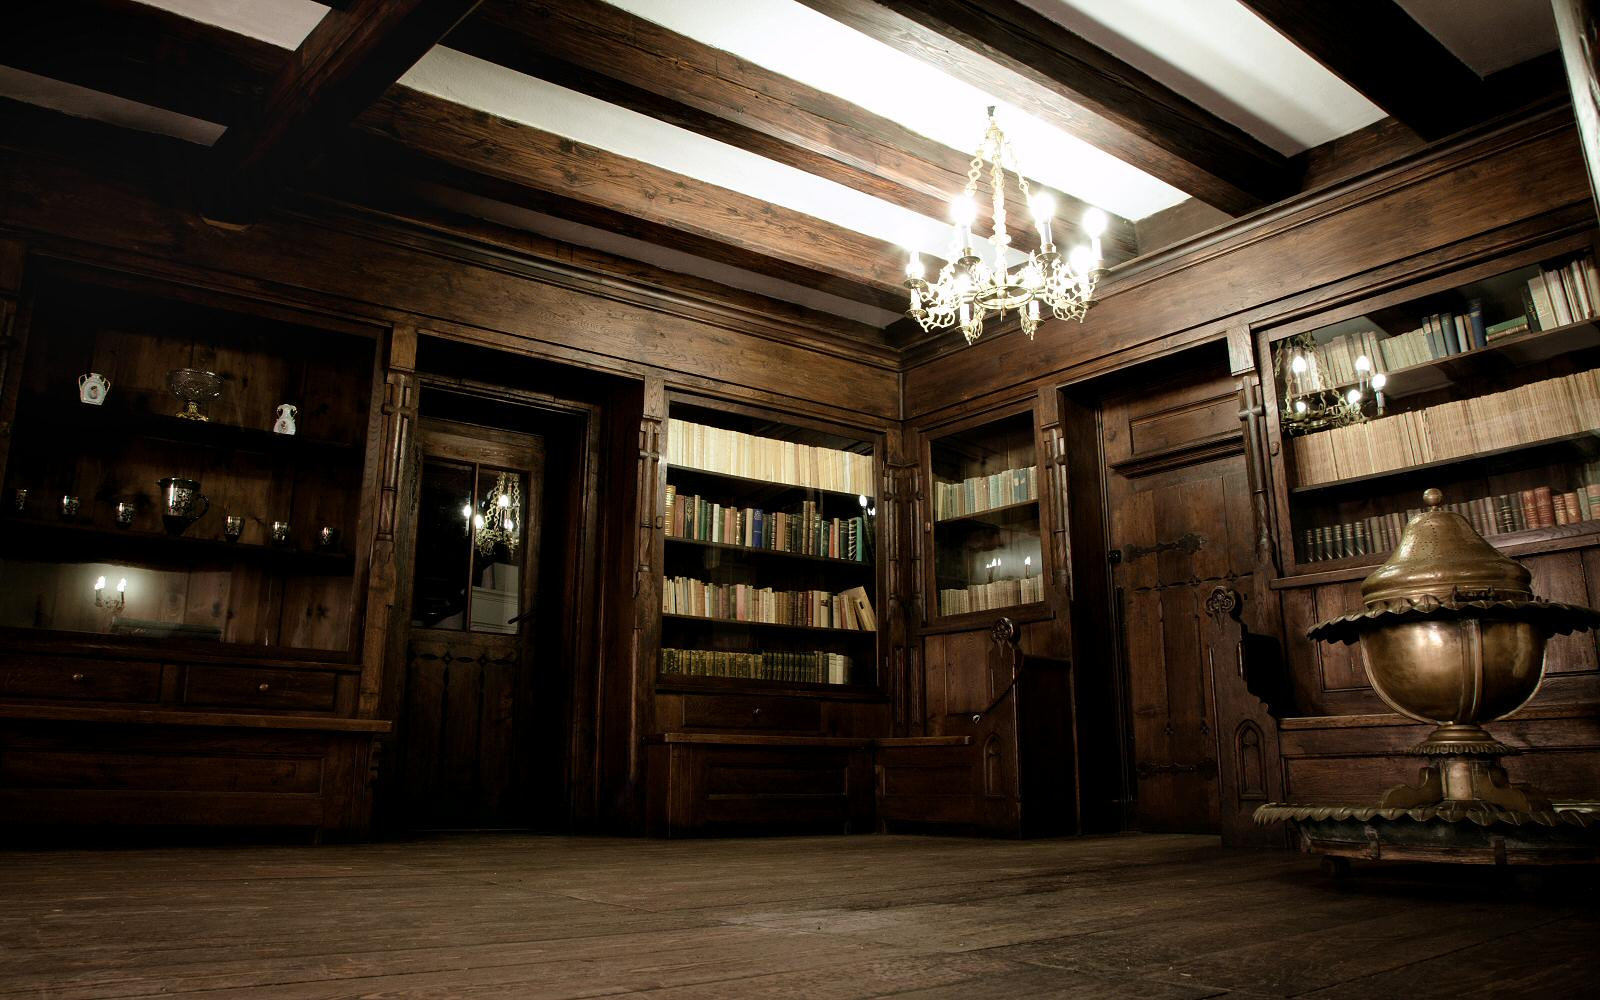 The library room is impressive and the atmosphere inside is calming and mysterious